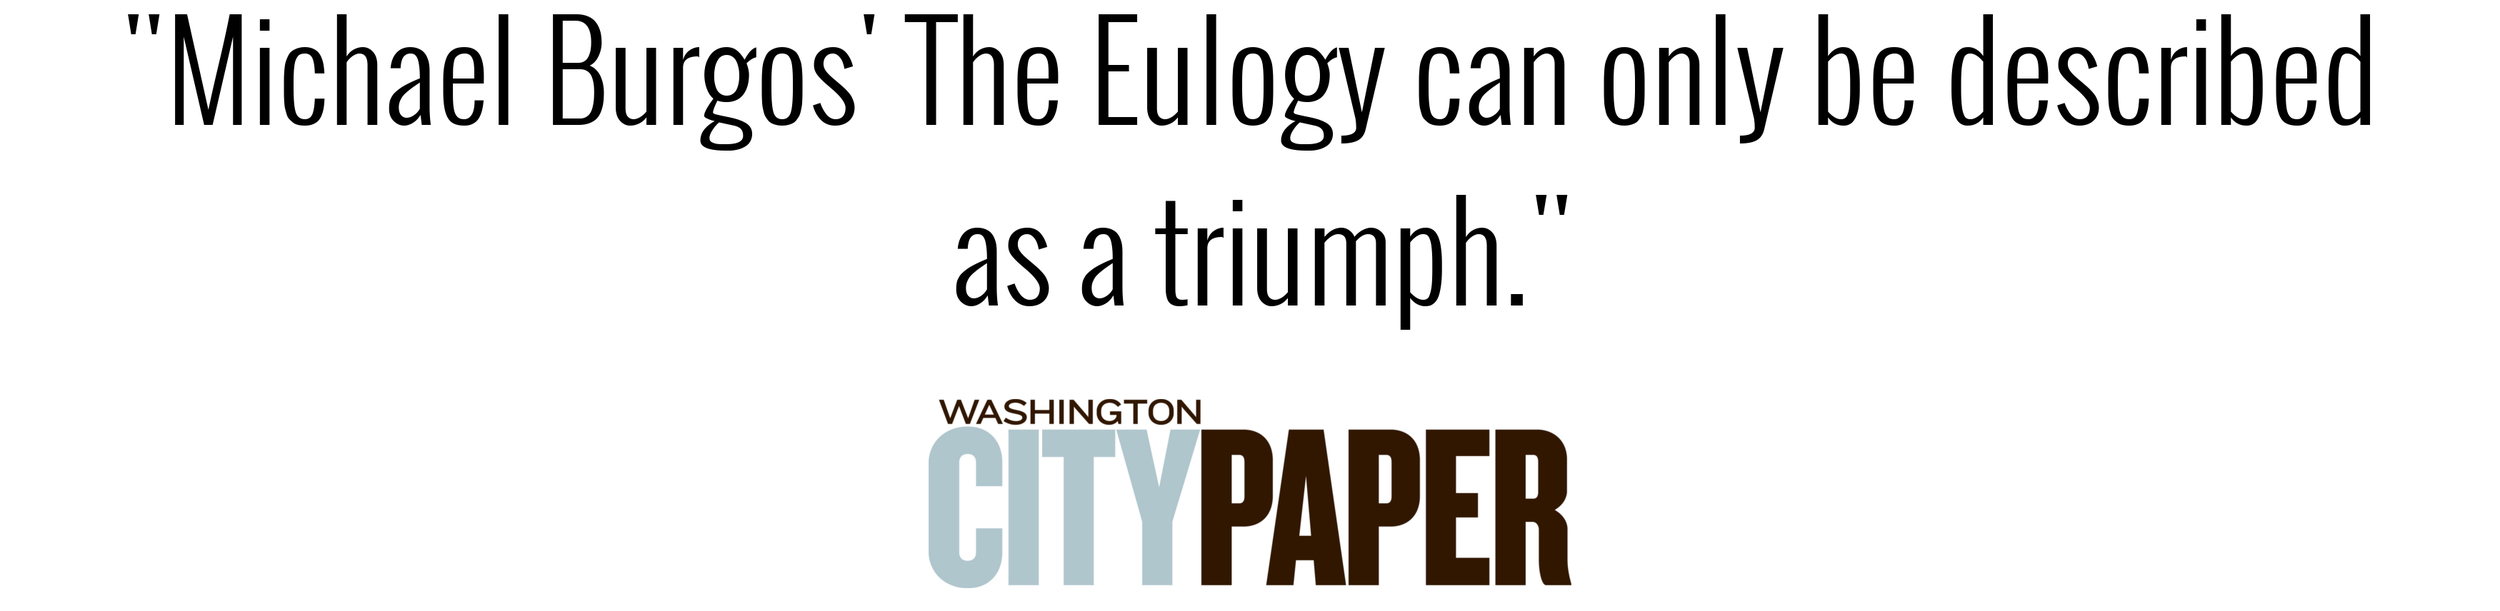 Washington City Paper quote.jpg